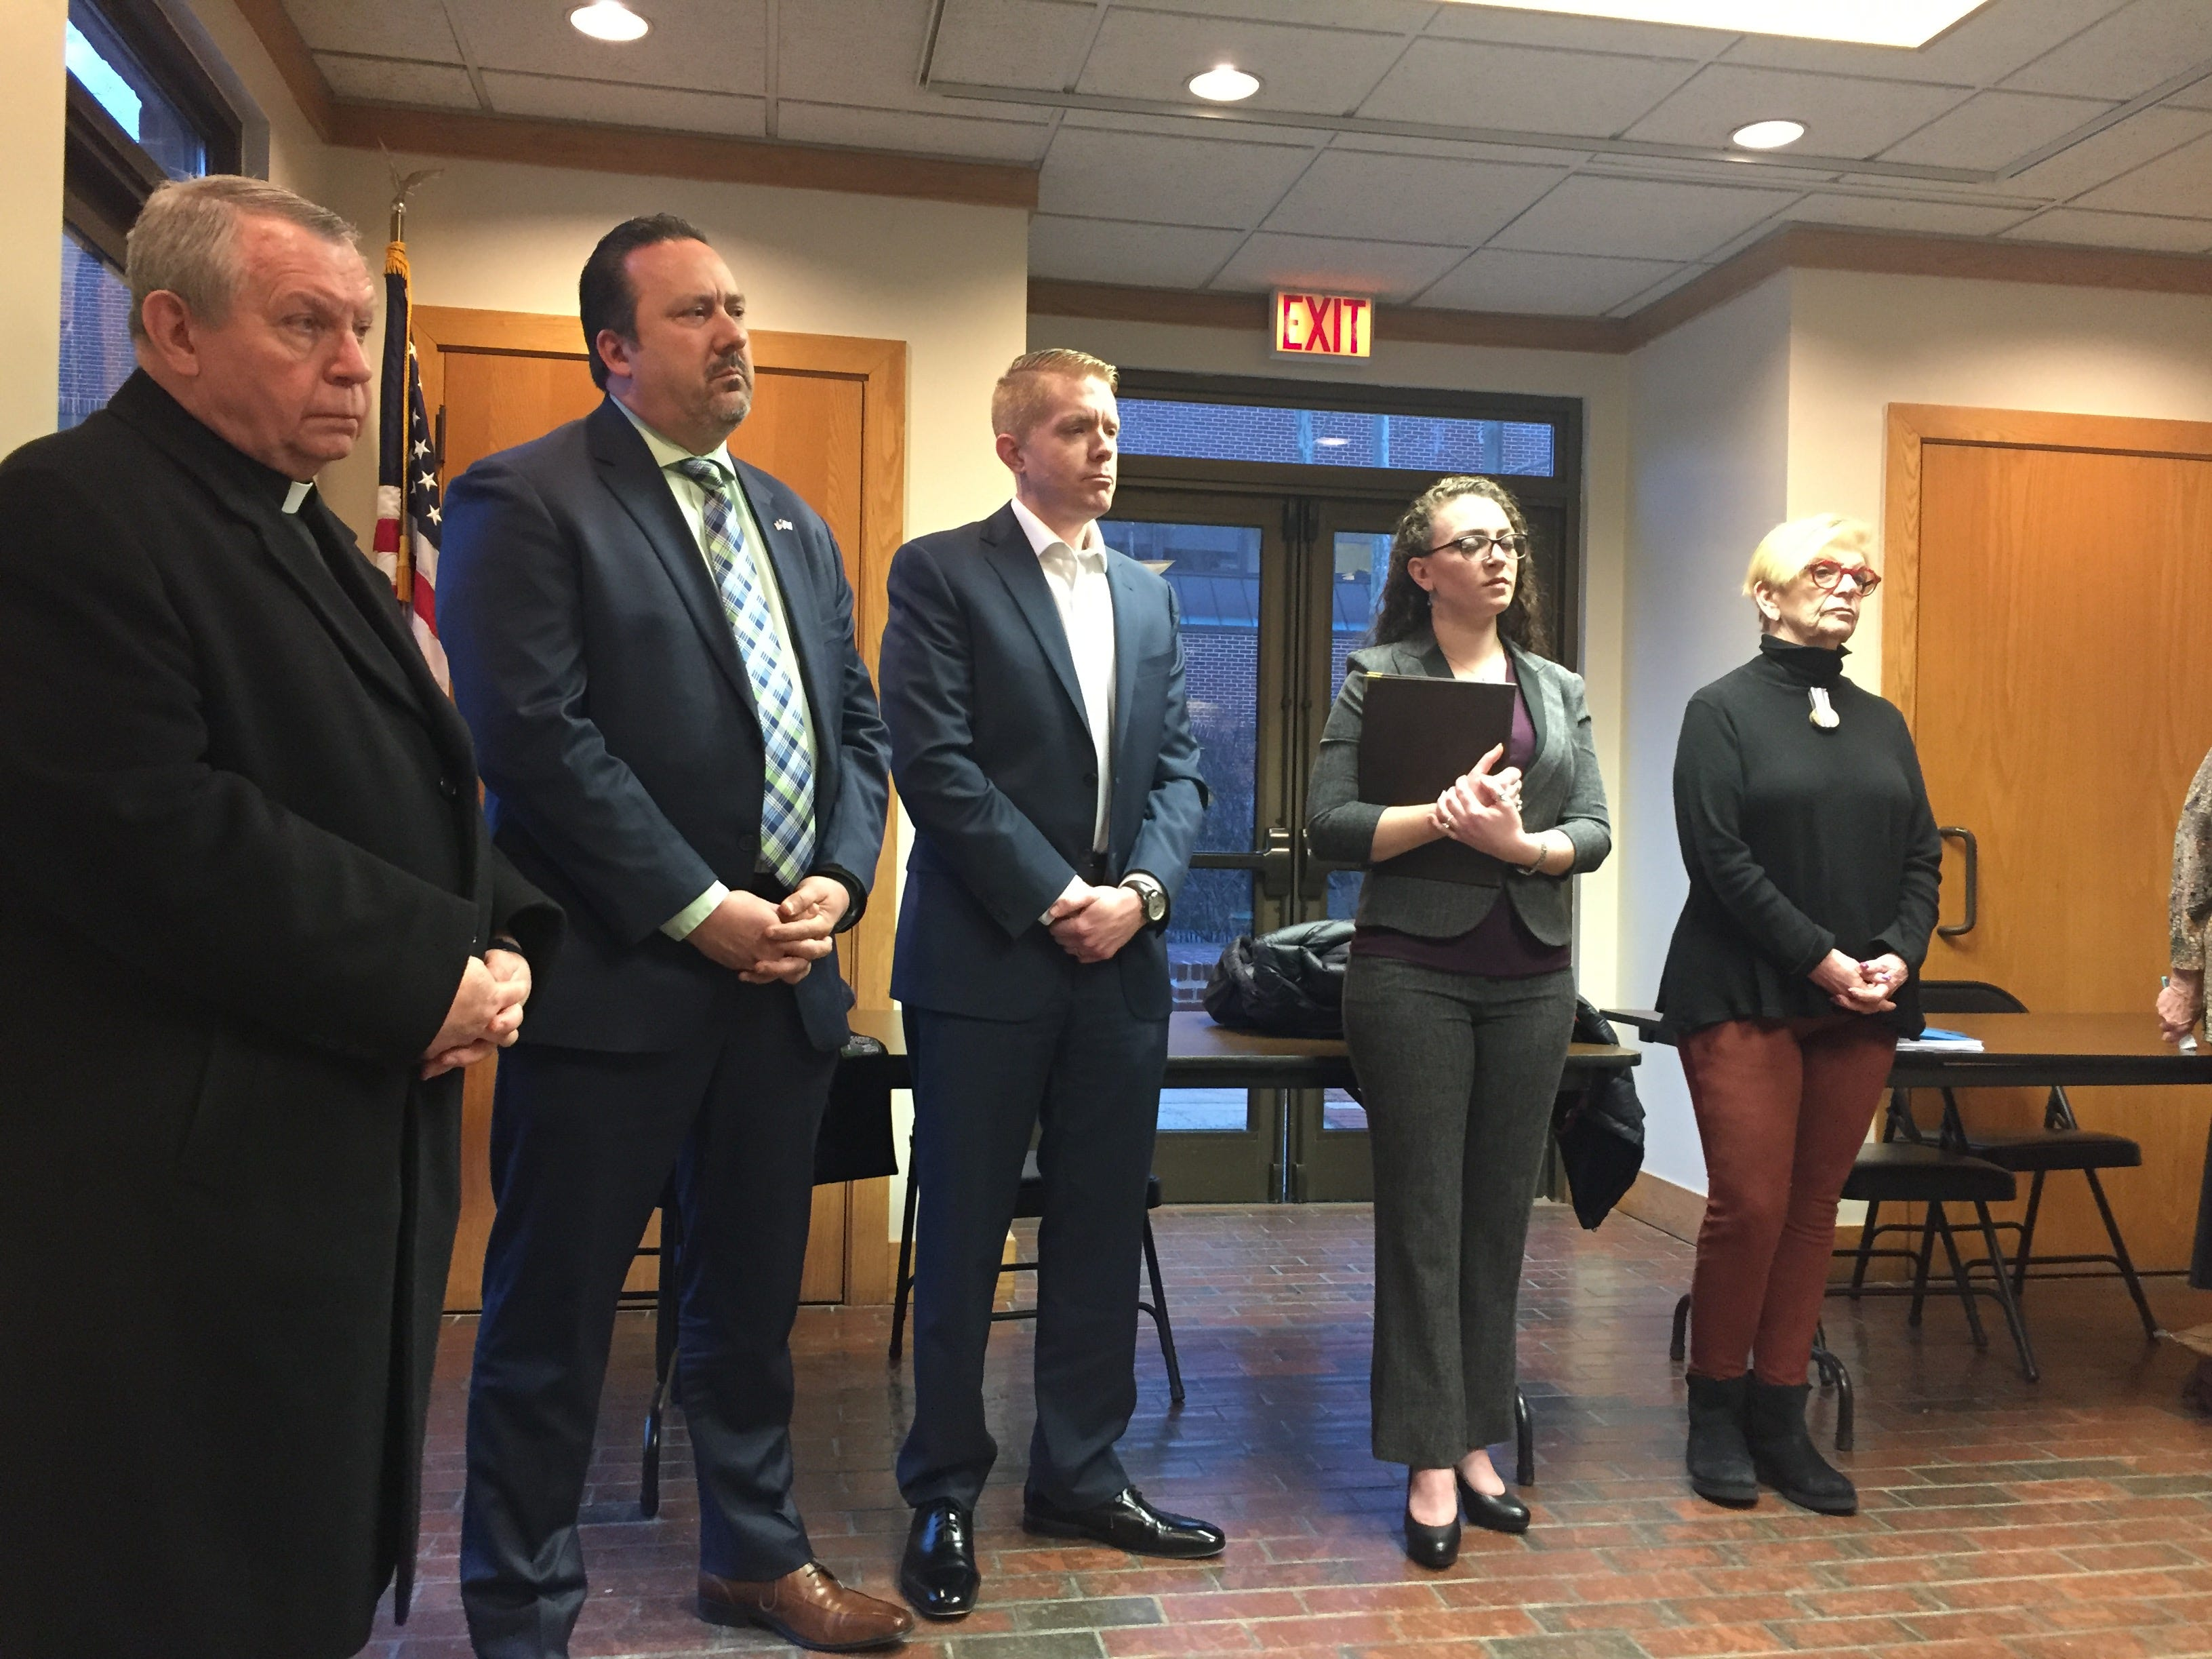 Religious leaders and advocates at Toms River press conference before the council meeting